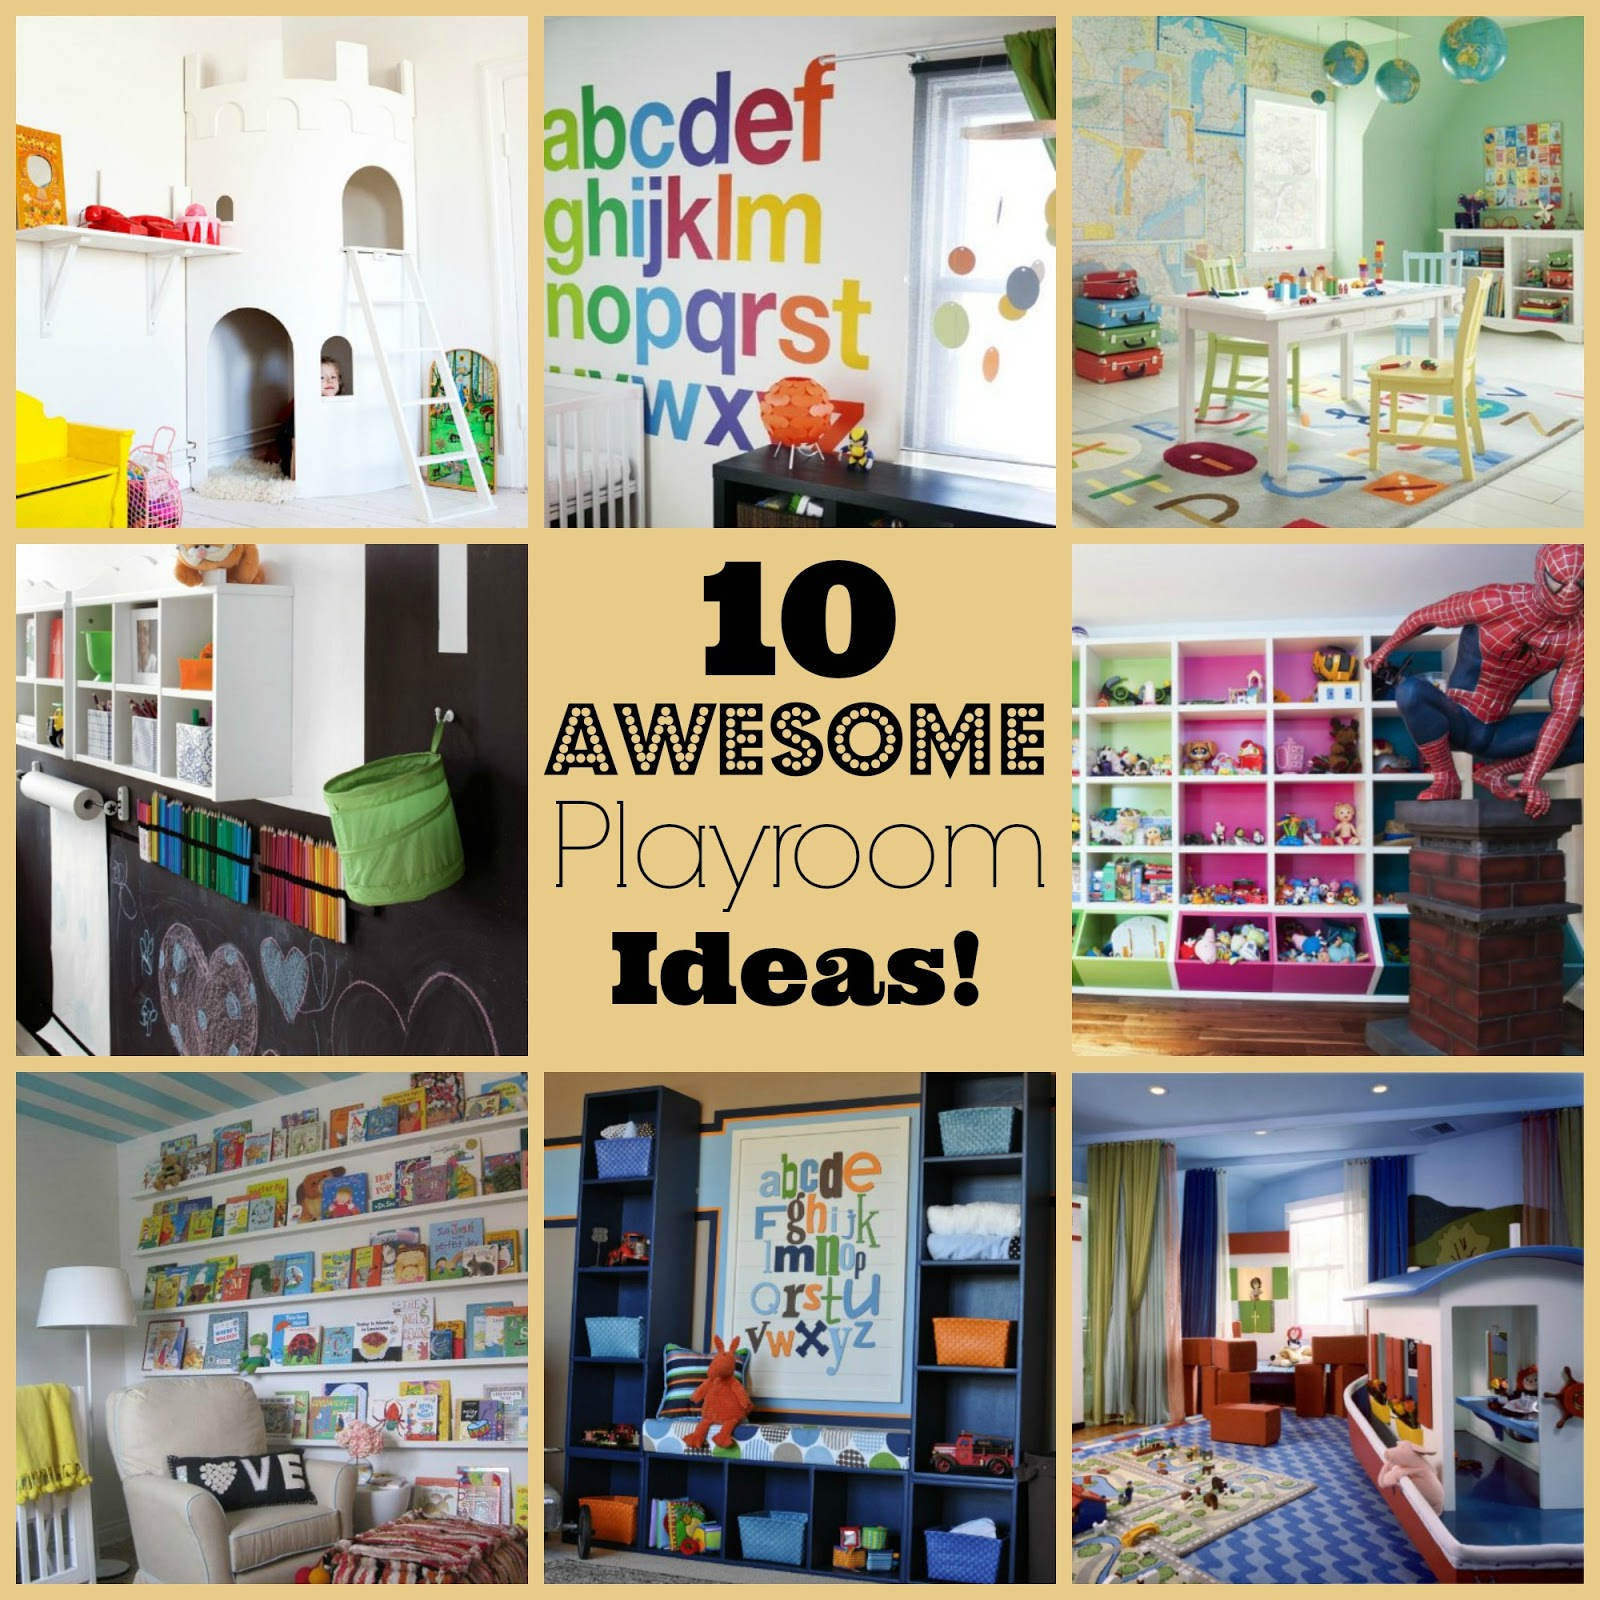 She Turned Her Dreams Into Plans 10 Awesome Playroom Ideas